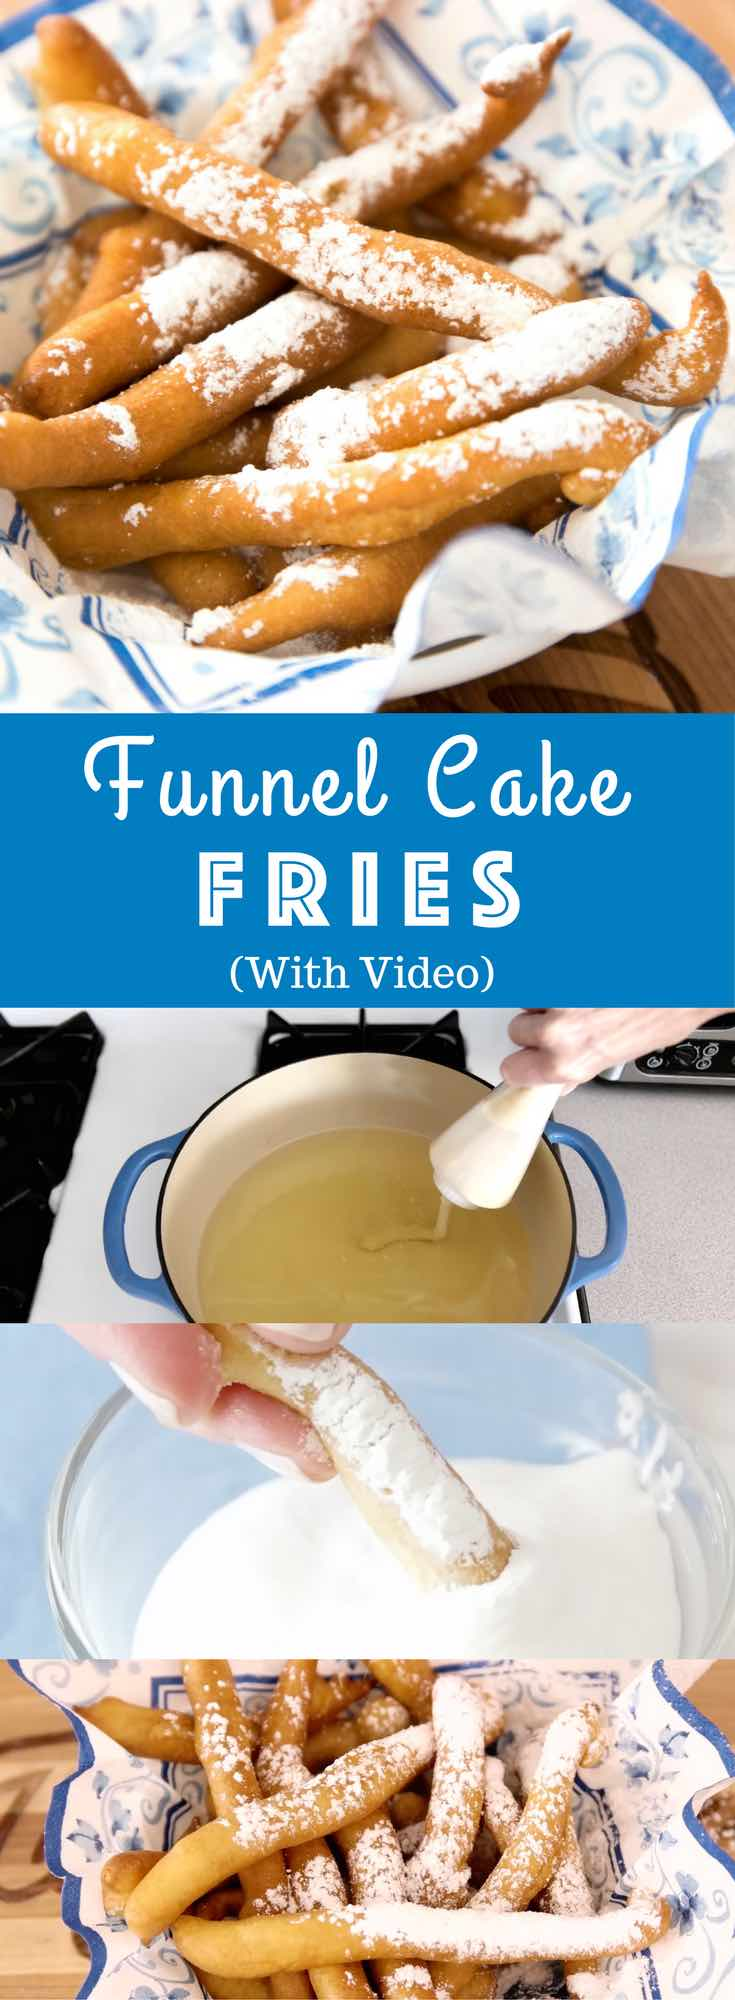 Funnel Cake Fries are golden on the outside and fluffy inside. Skip the State Fair and make these funnel fries for a party and dip them in caramel sauce or marshmallow fluff. Ready in just 20 minutes with no baking required #funnelcakefries #funnelfries